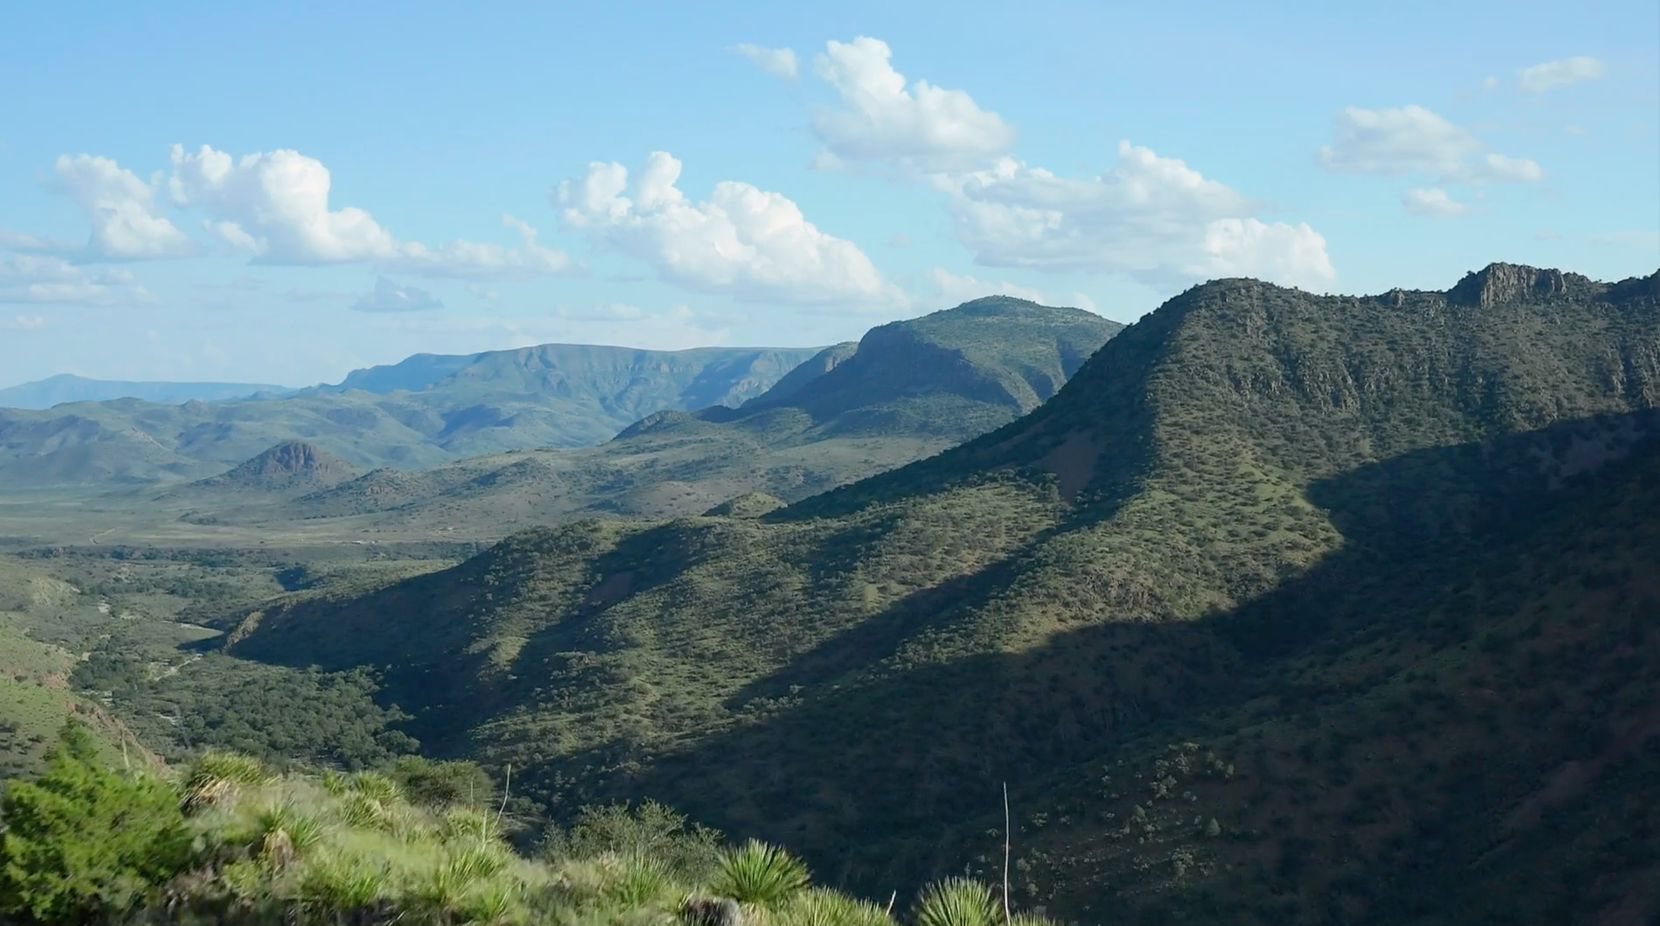 Fox Canyon Ranch is south of Interstate 10 in far west Texas.